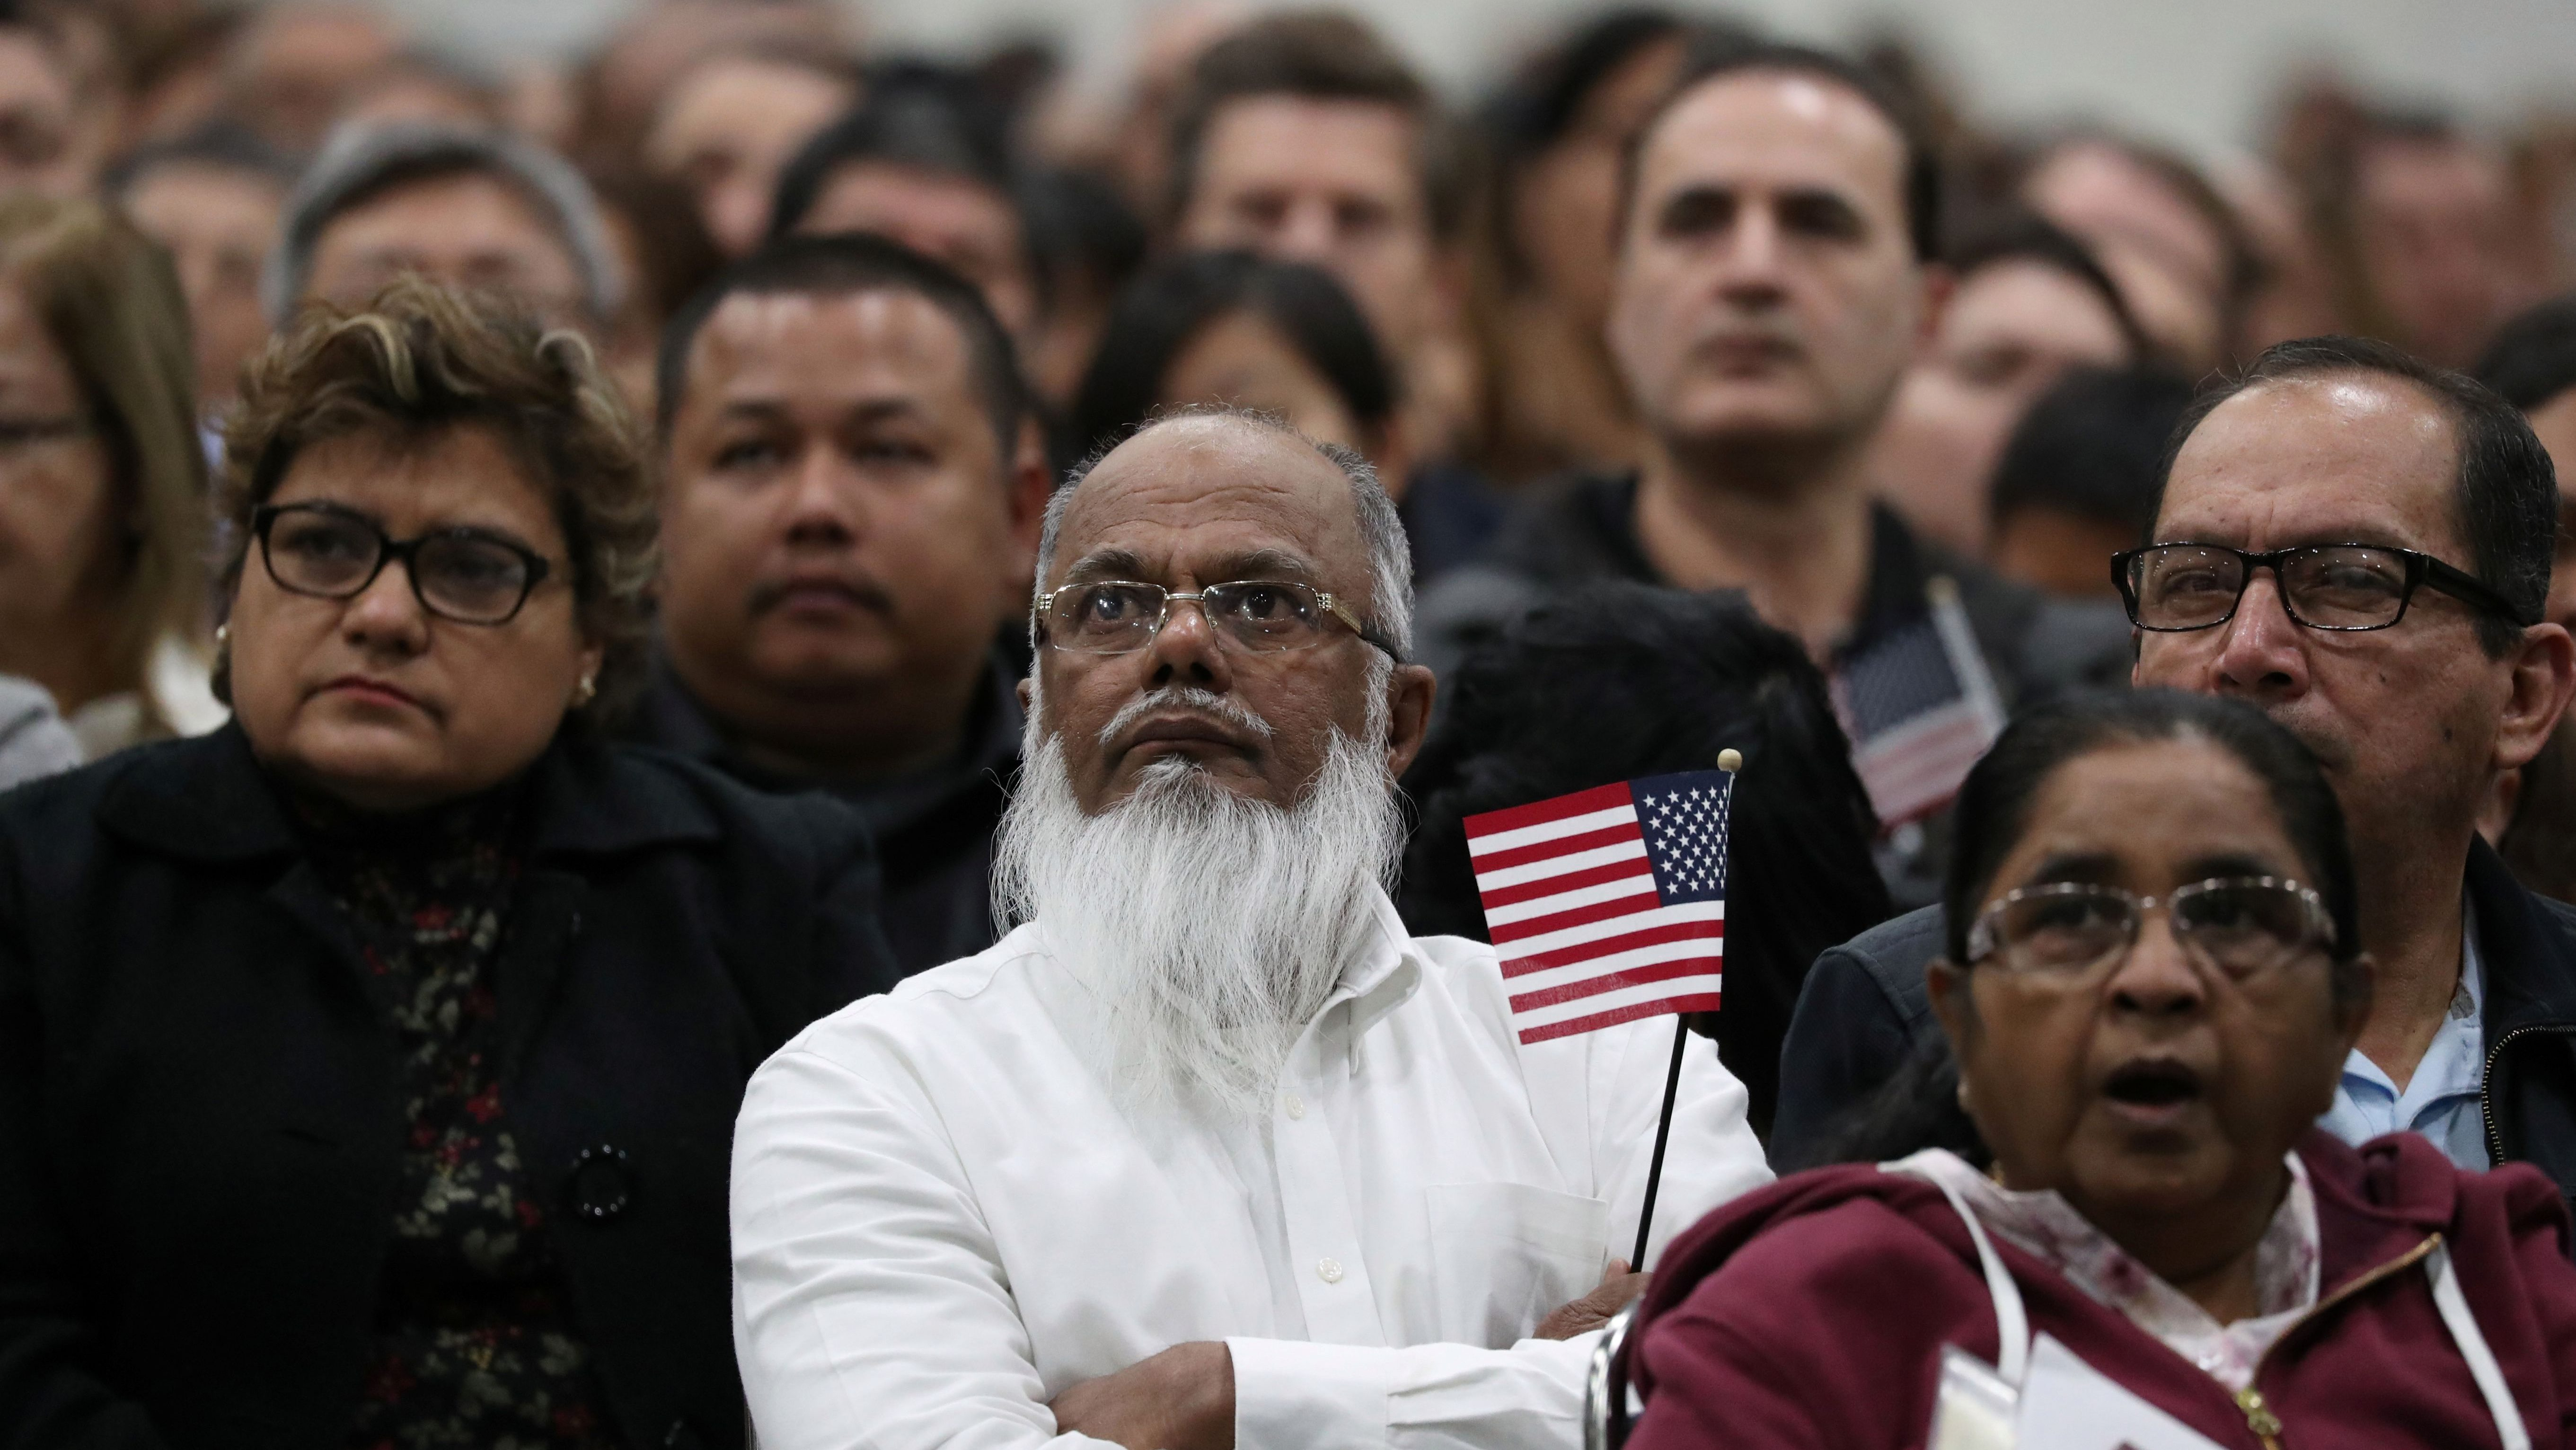 Immigrants participate in a naturalization ceremony to become new U.S. citizens